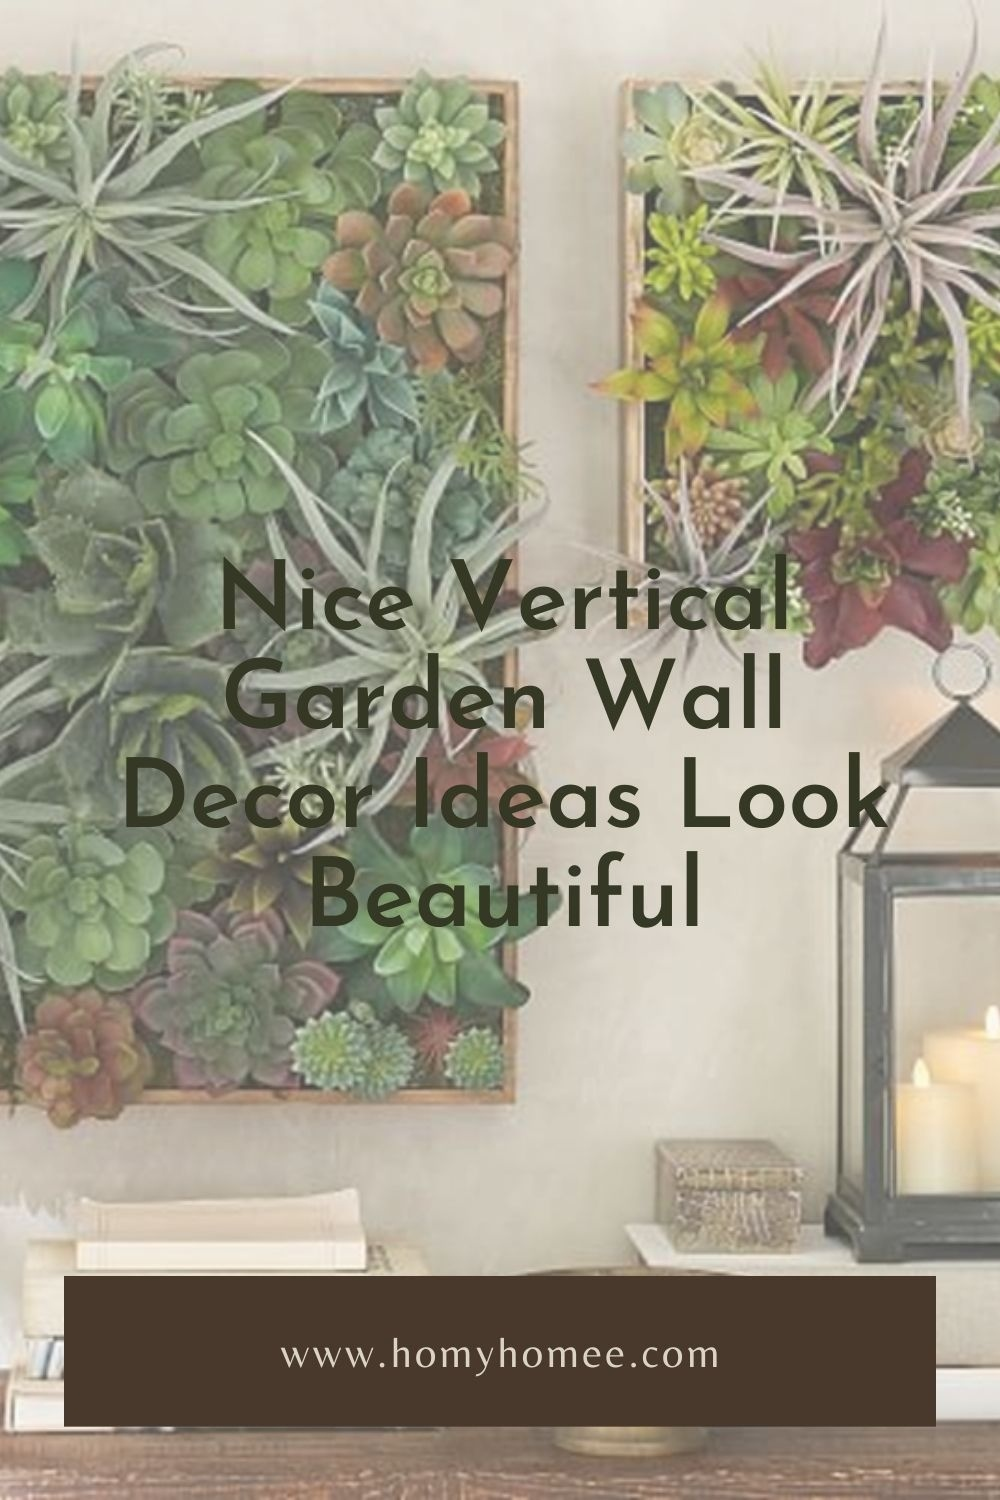 Nice Vertical Garden Wall Decor Ideas Look Beautiful